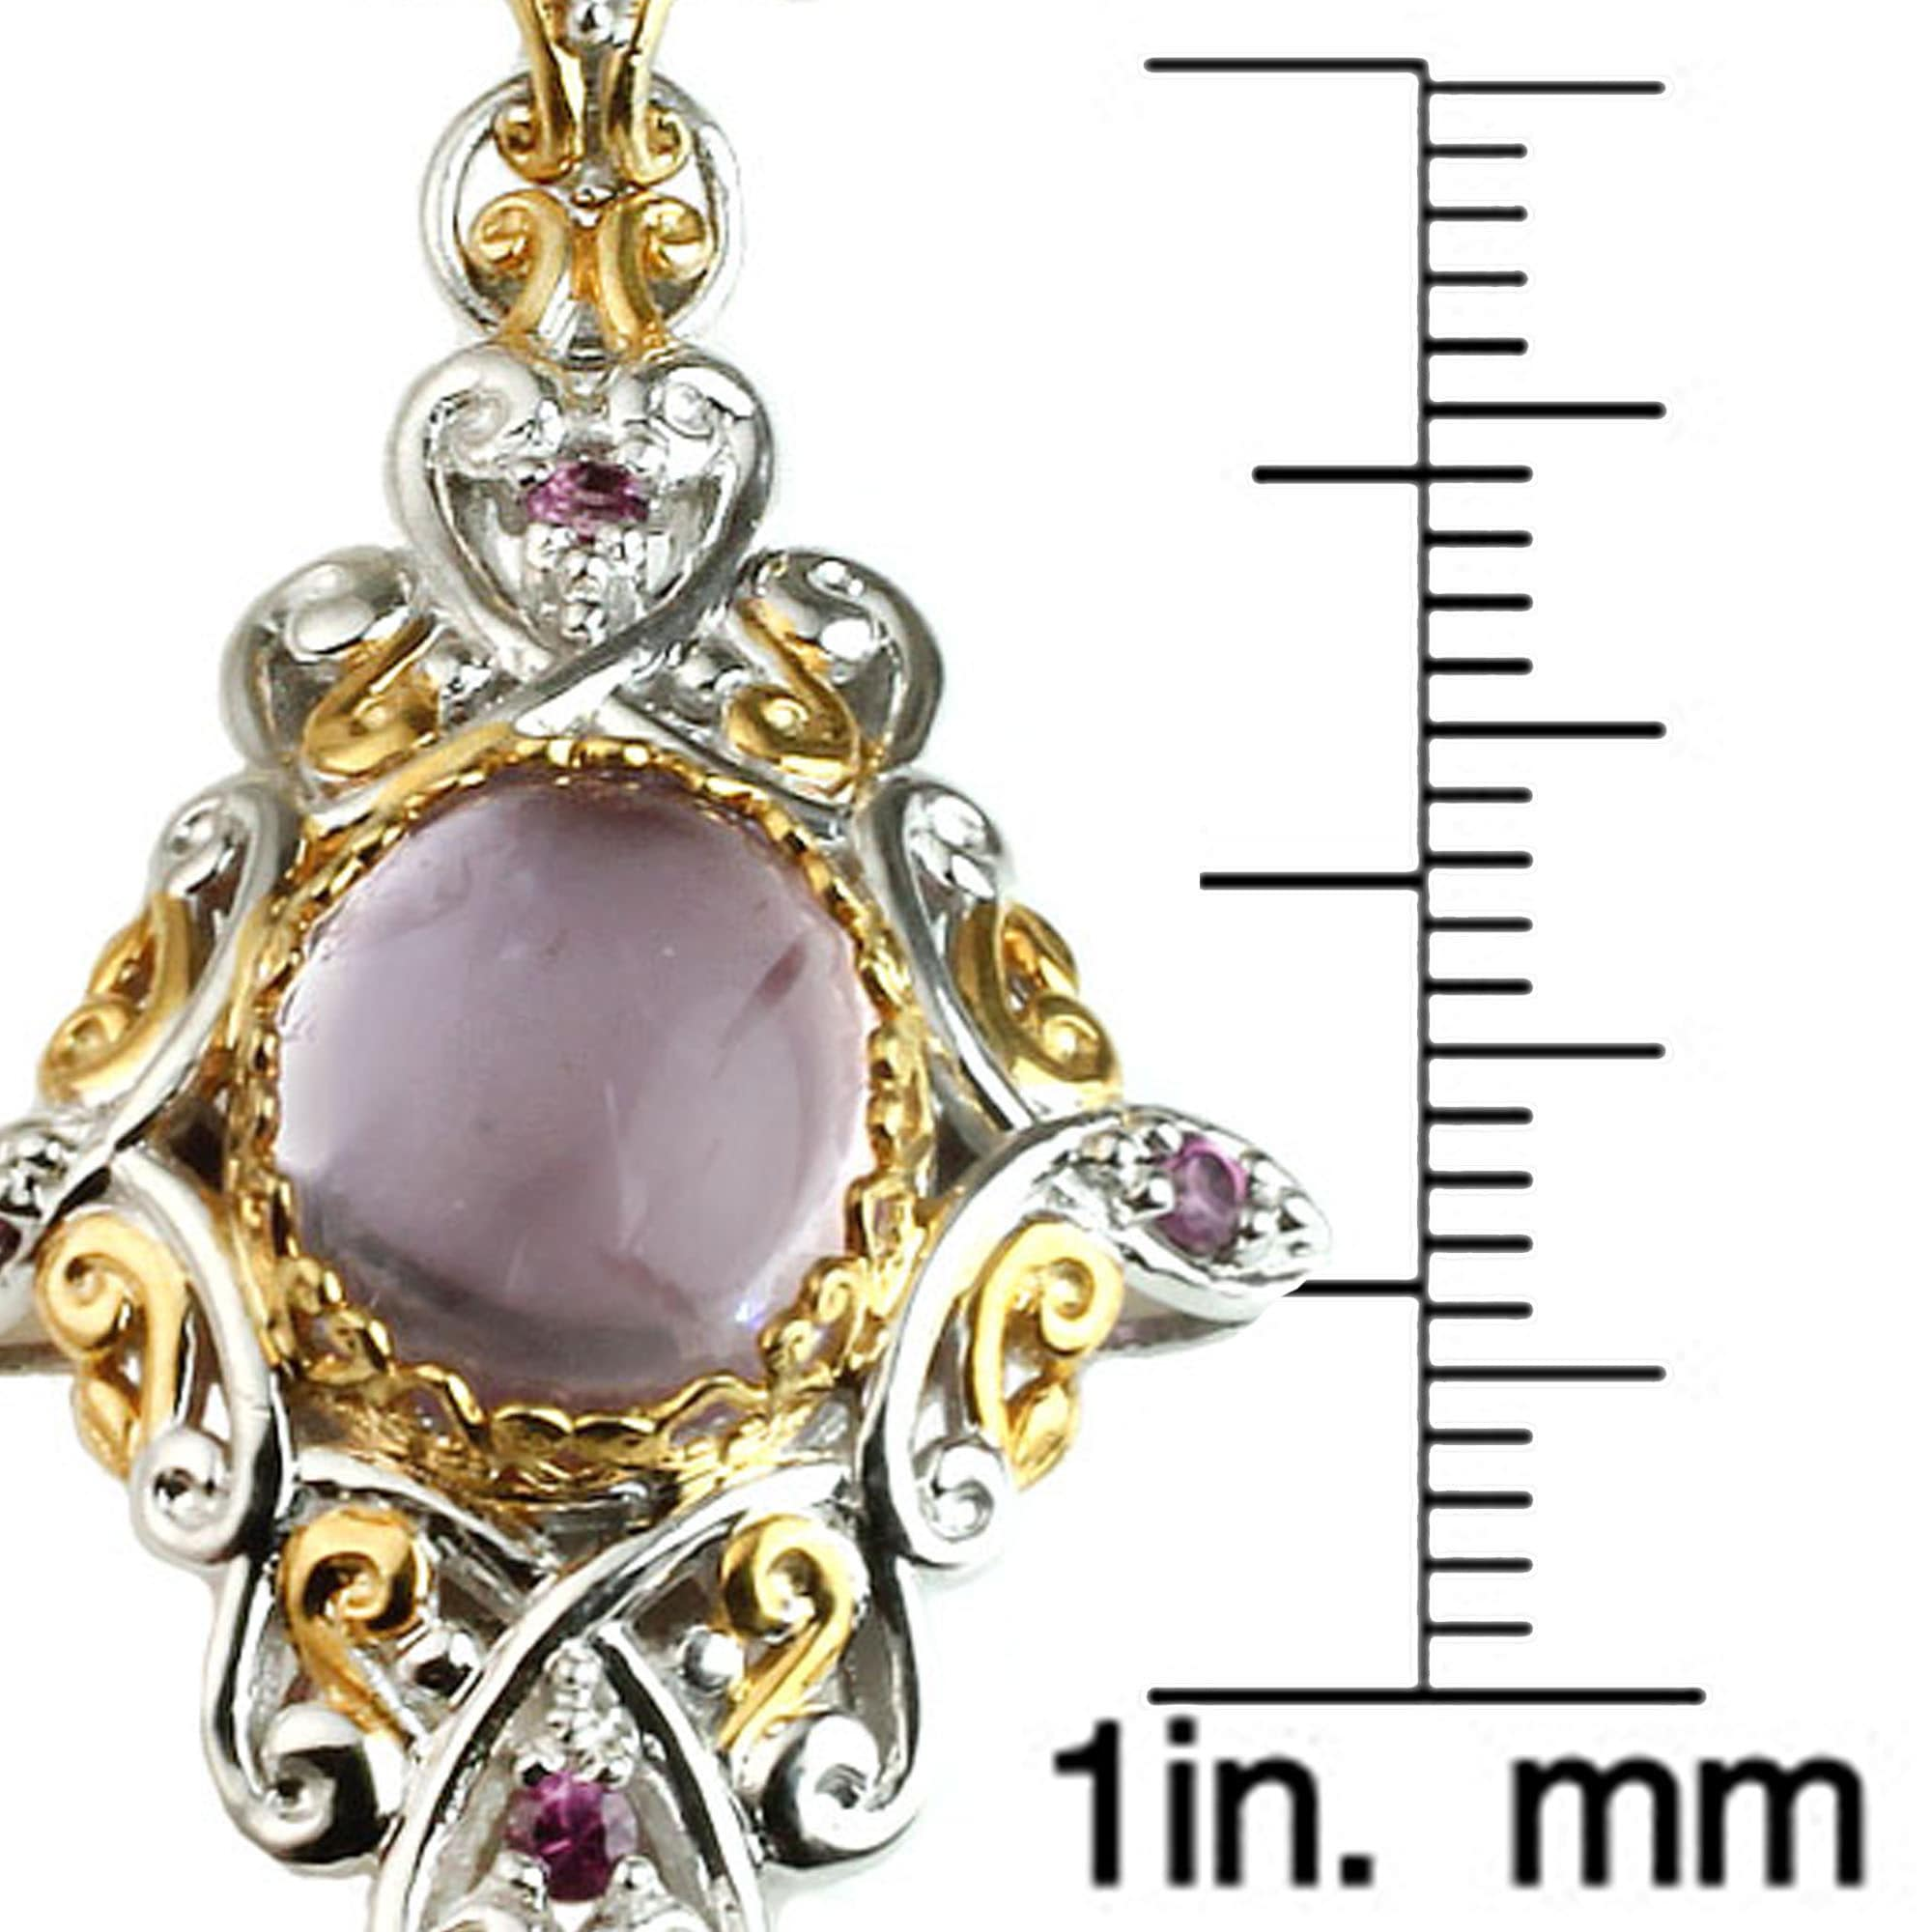 its blow but due the cms my jewelry in kunzite can should relatively to hard when sharp care place break earrings landed is a distinct gemstones handled wrong be education cleavage with